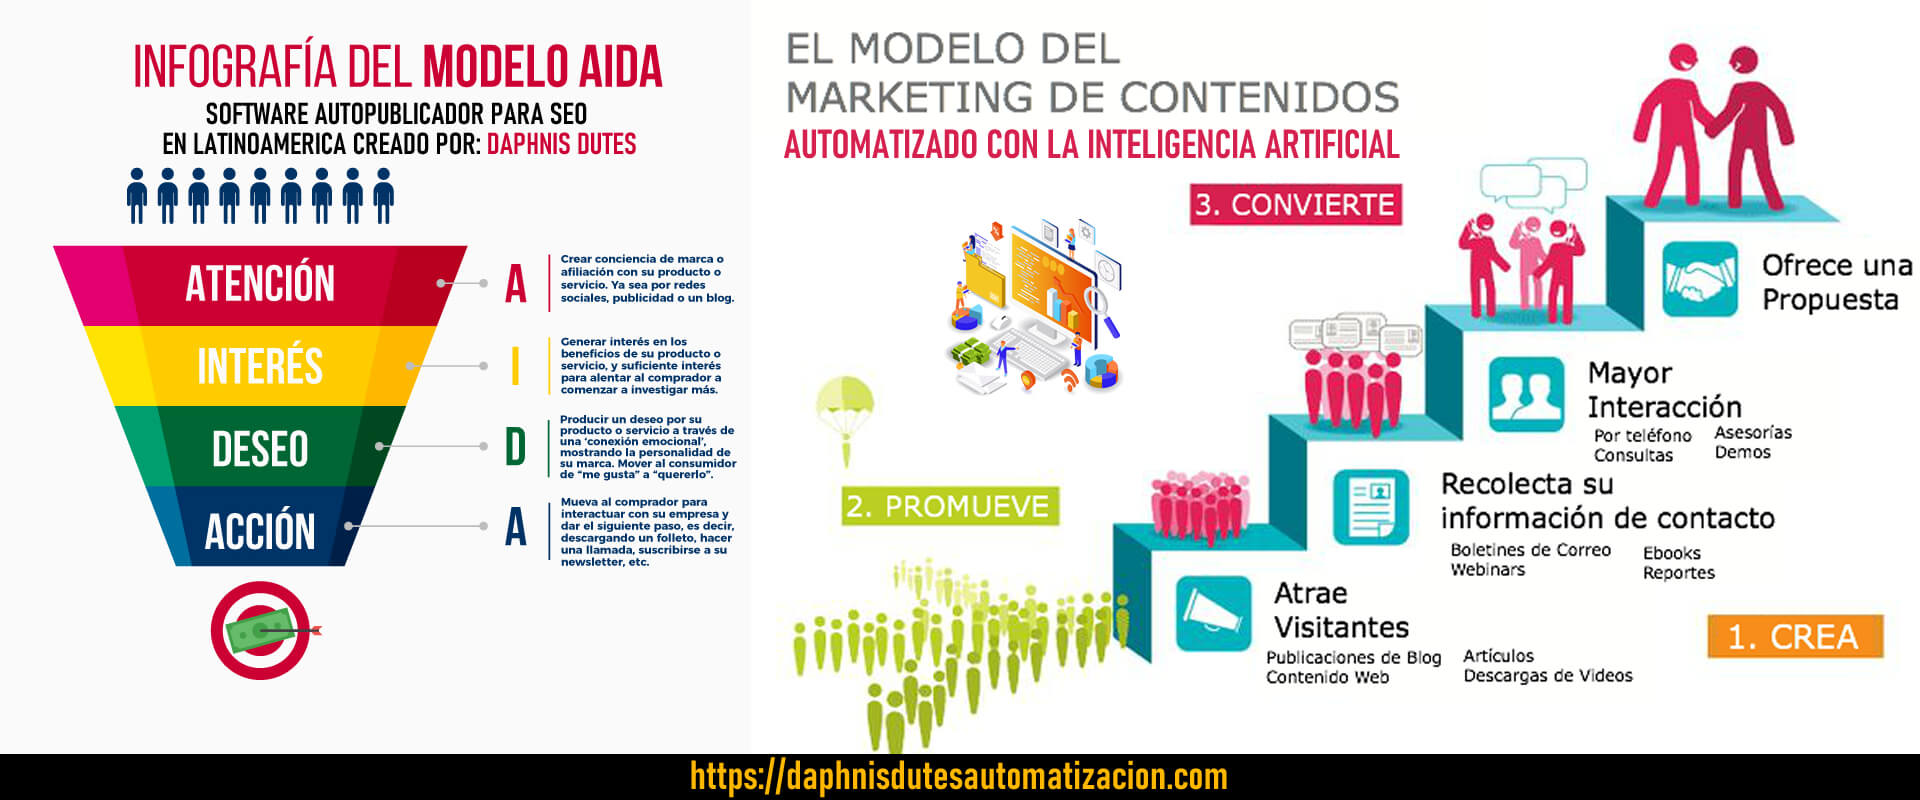 software-marketing-de-contenidos-daphnis-dutes...